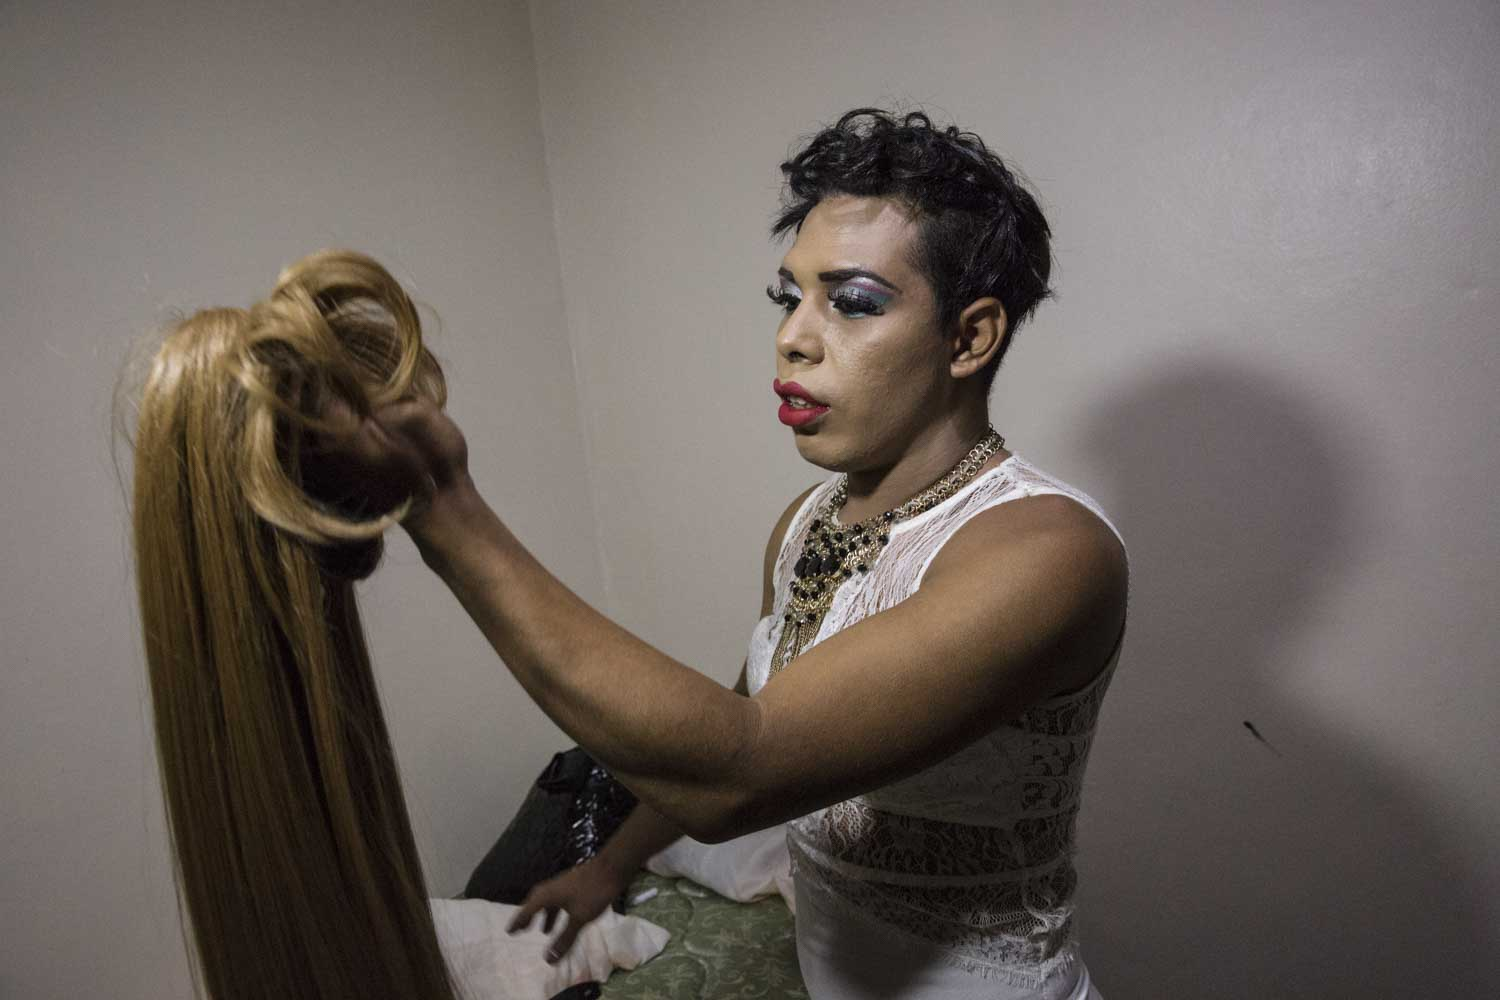 Darwin prepares  before a beauty contest for LGBT people.